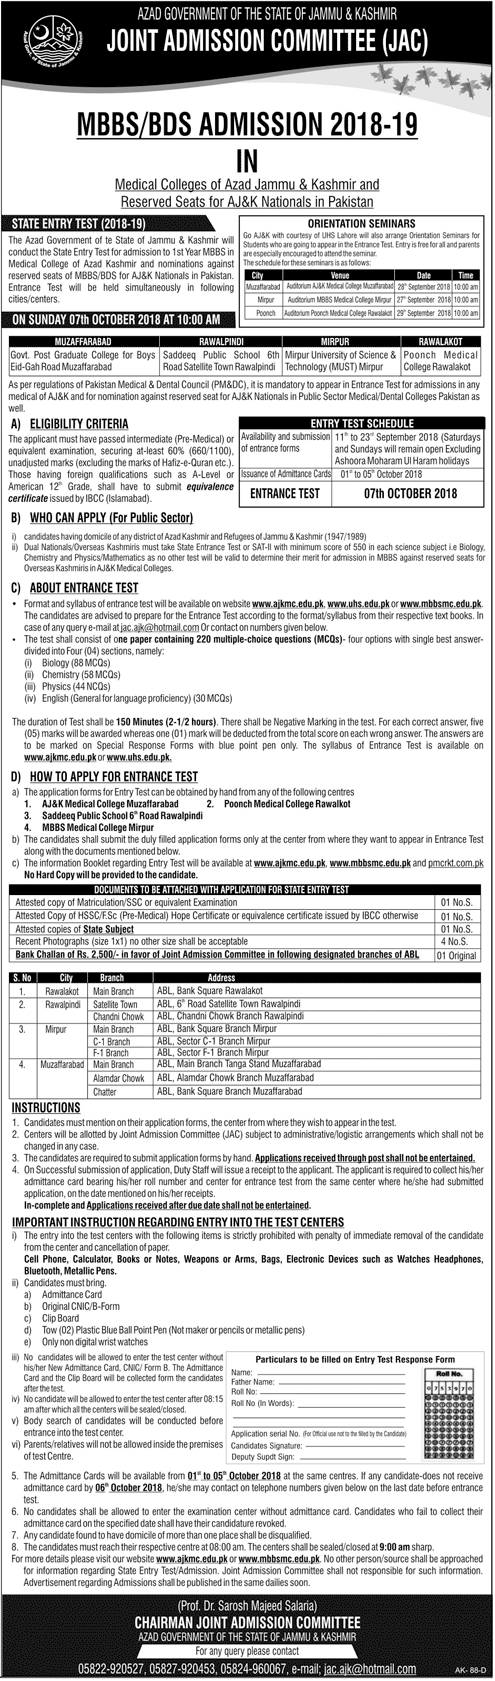 AJK Medical Colleges State Entry Test Application Form 2018